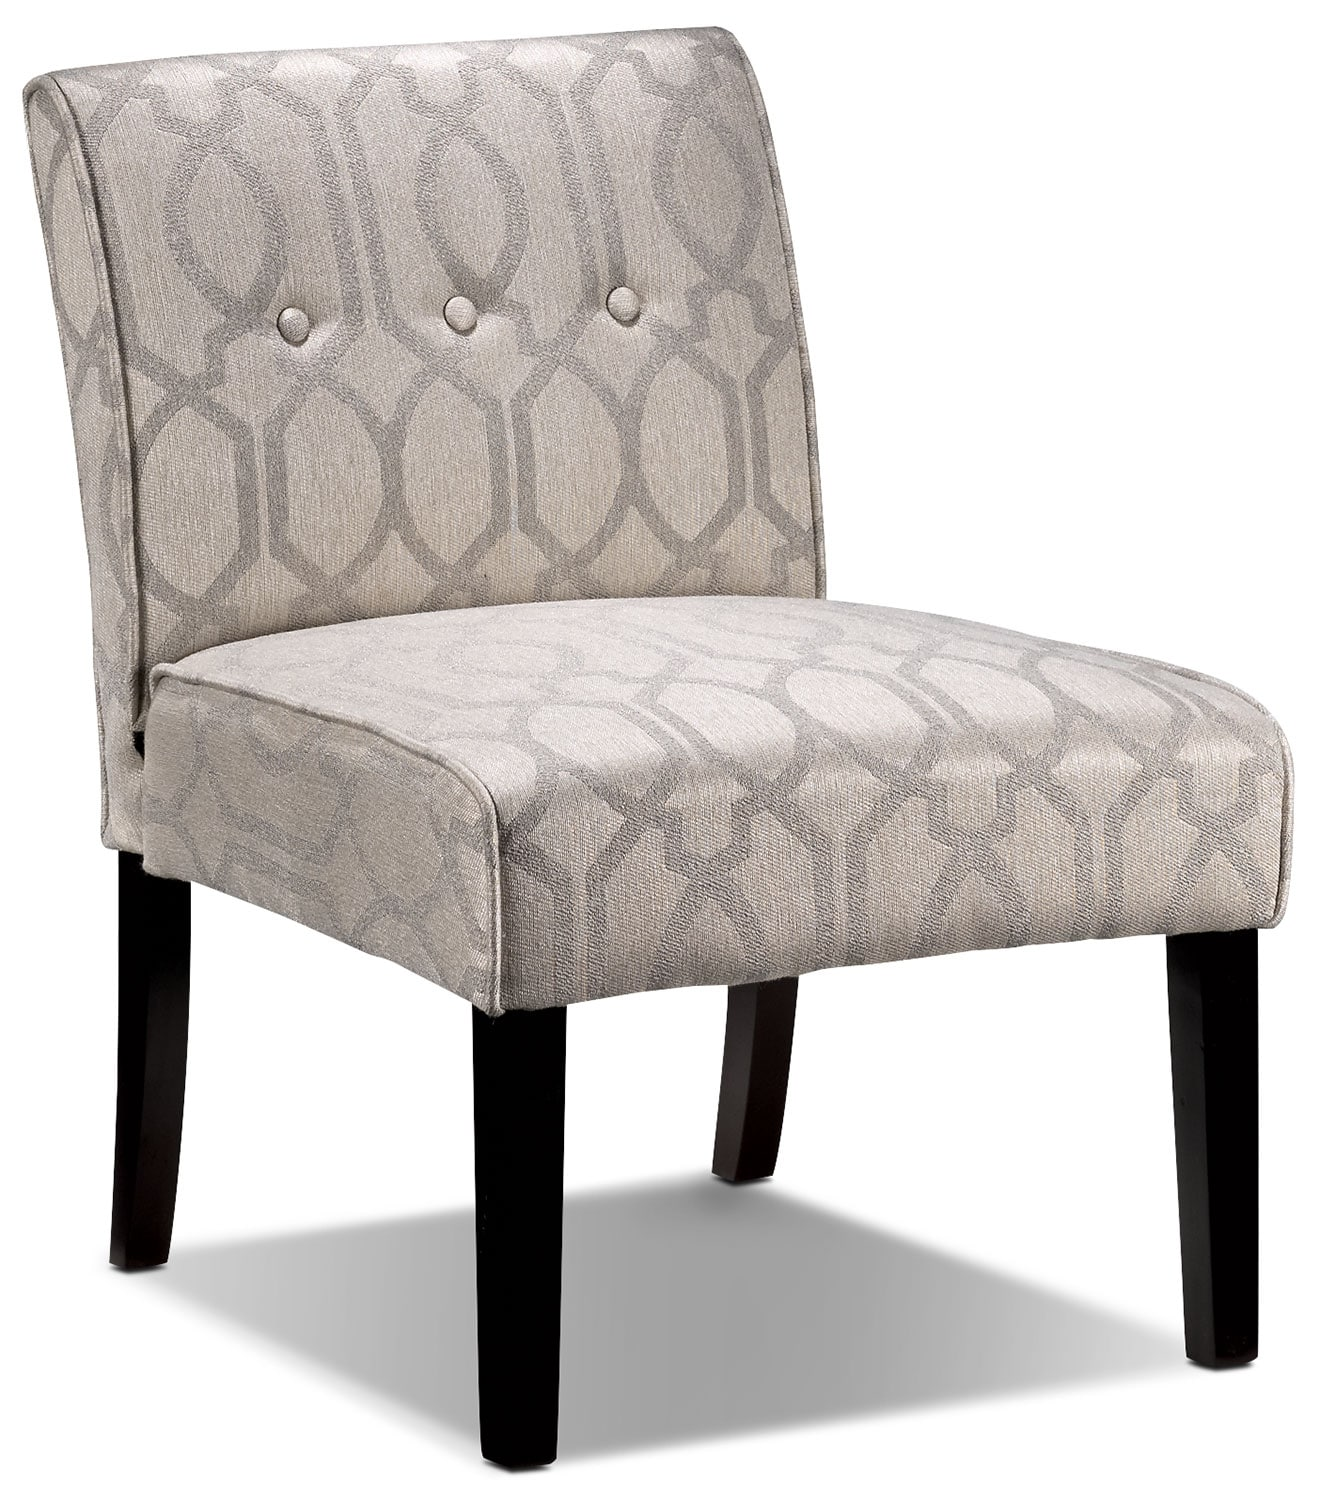 Accent and Occasional Furniture - Candace Accent Chair - Beige